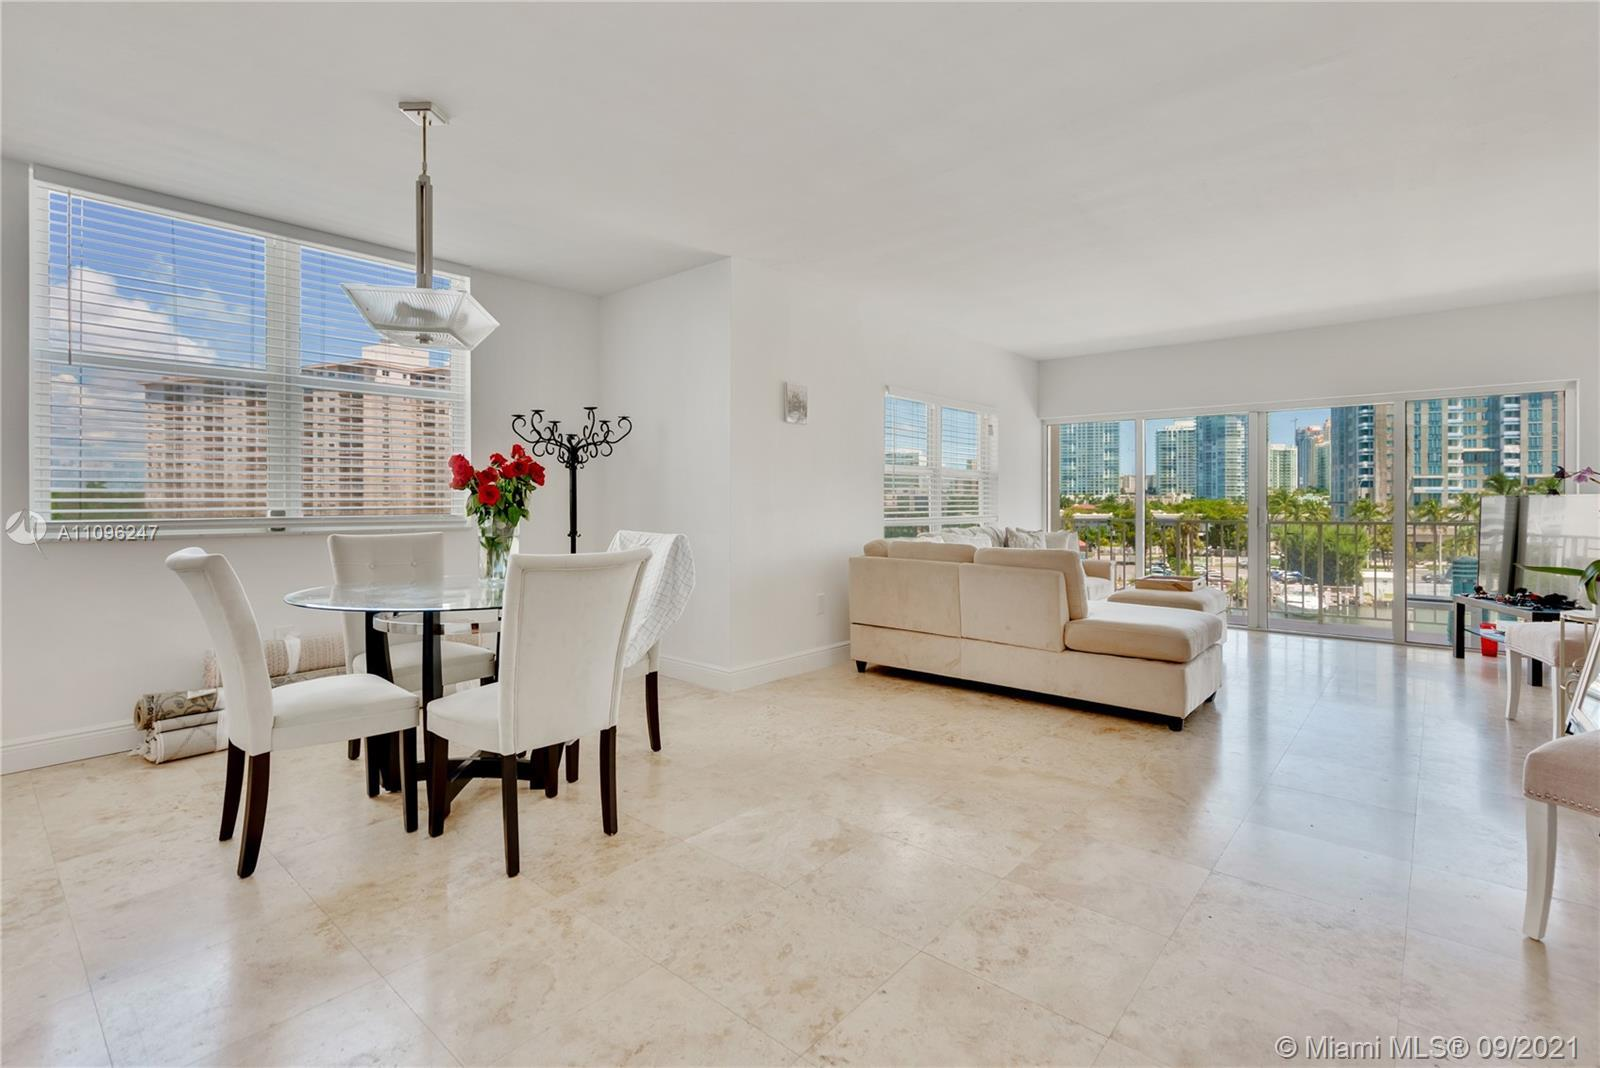 Spacious corner unit at Arlen House in Sunny Isles overlooking the waterways. The unit features 2 be